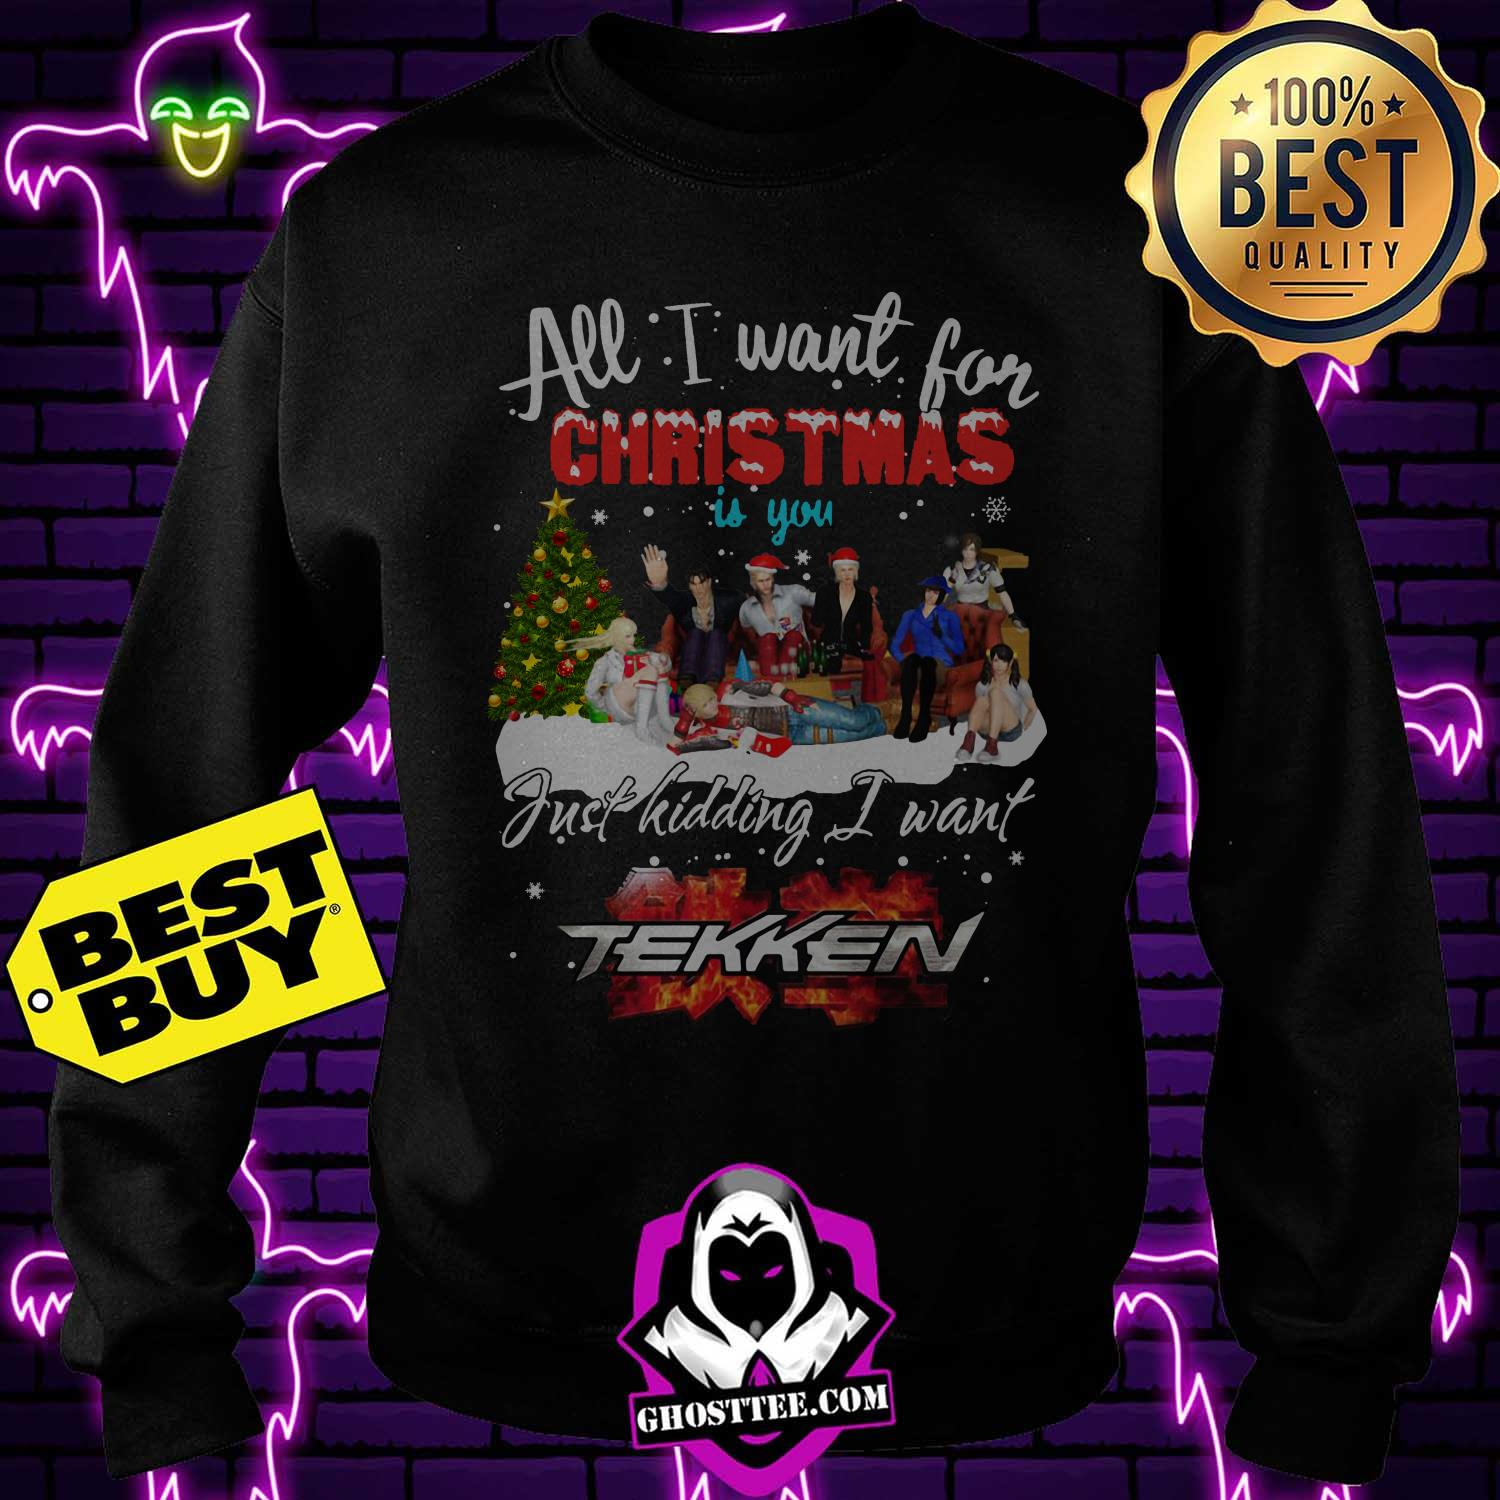 all i want for christmas is you just kidding i want tekken sweatshirt - All I want for Christmas is you just kidding I want Tekken shirt